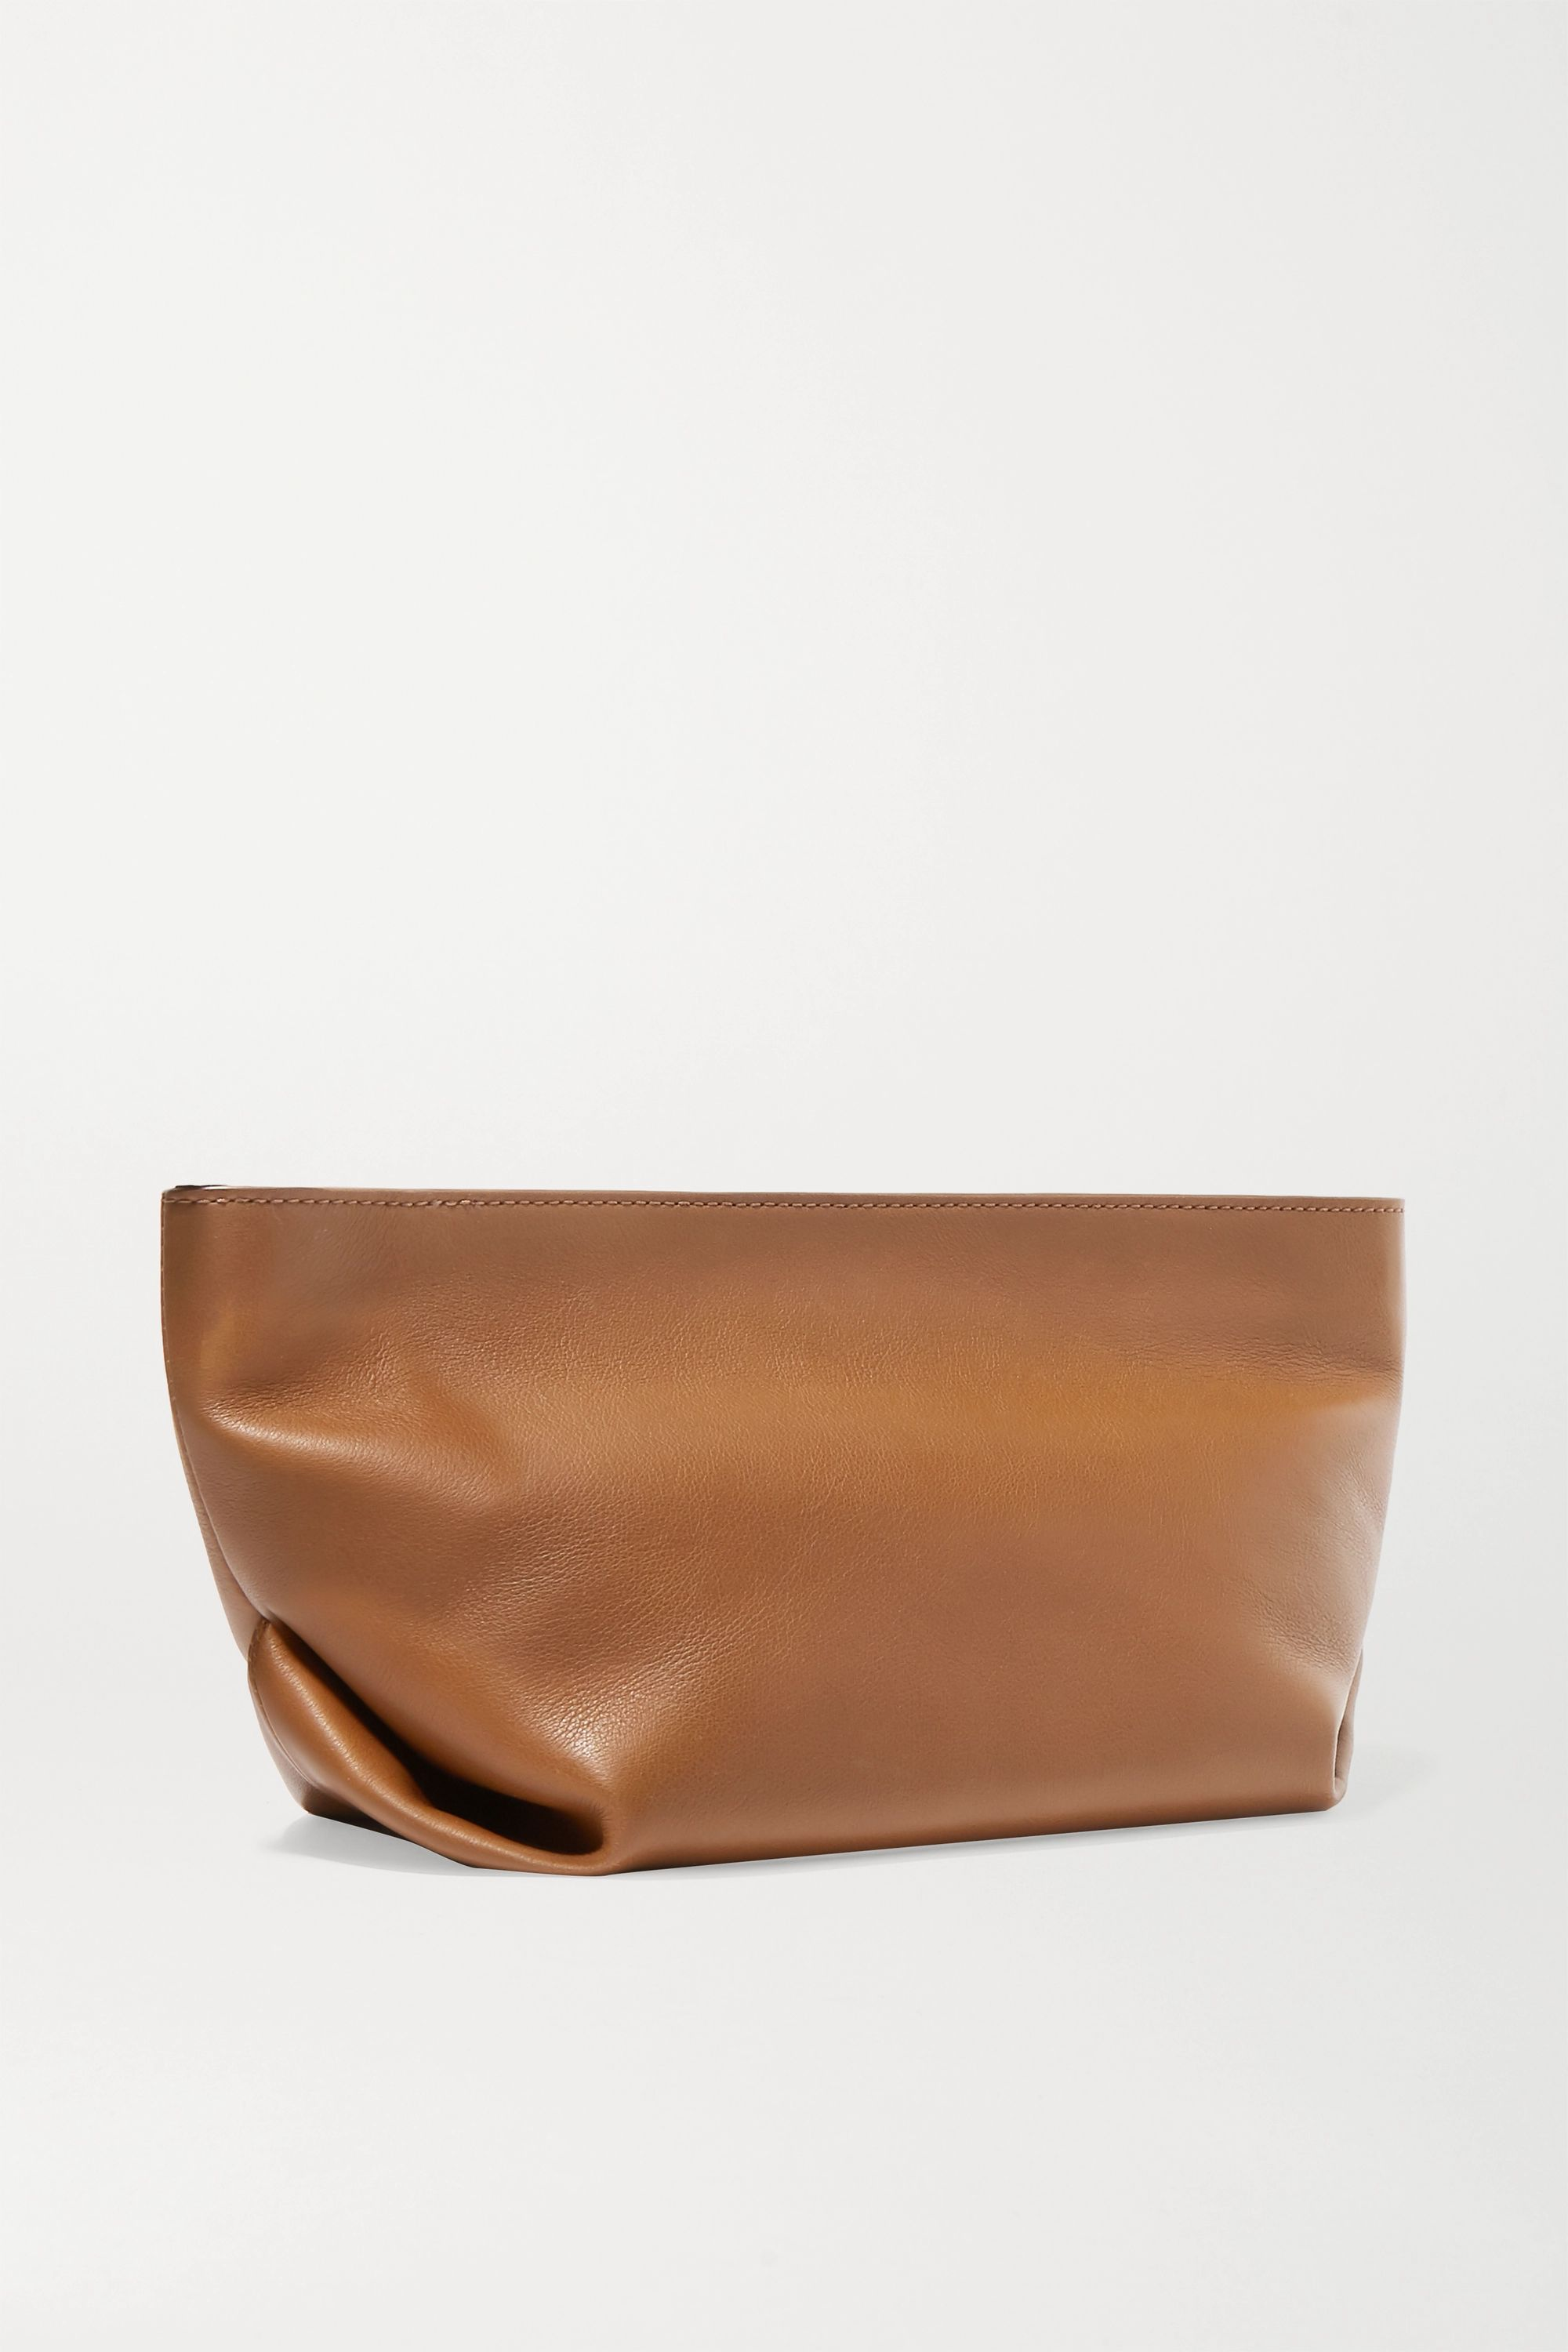 Khaite Envelope Pleat leather shoulder bag